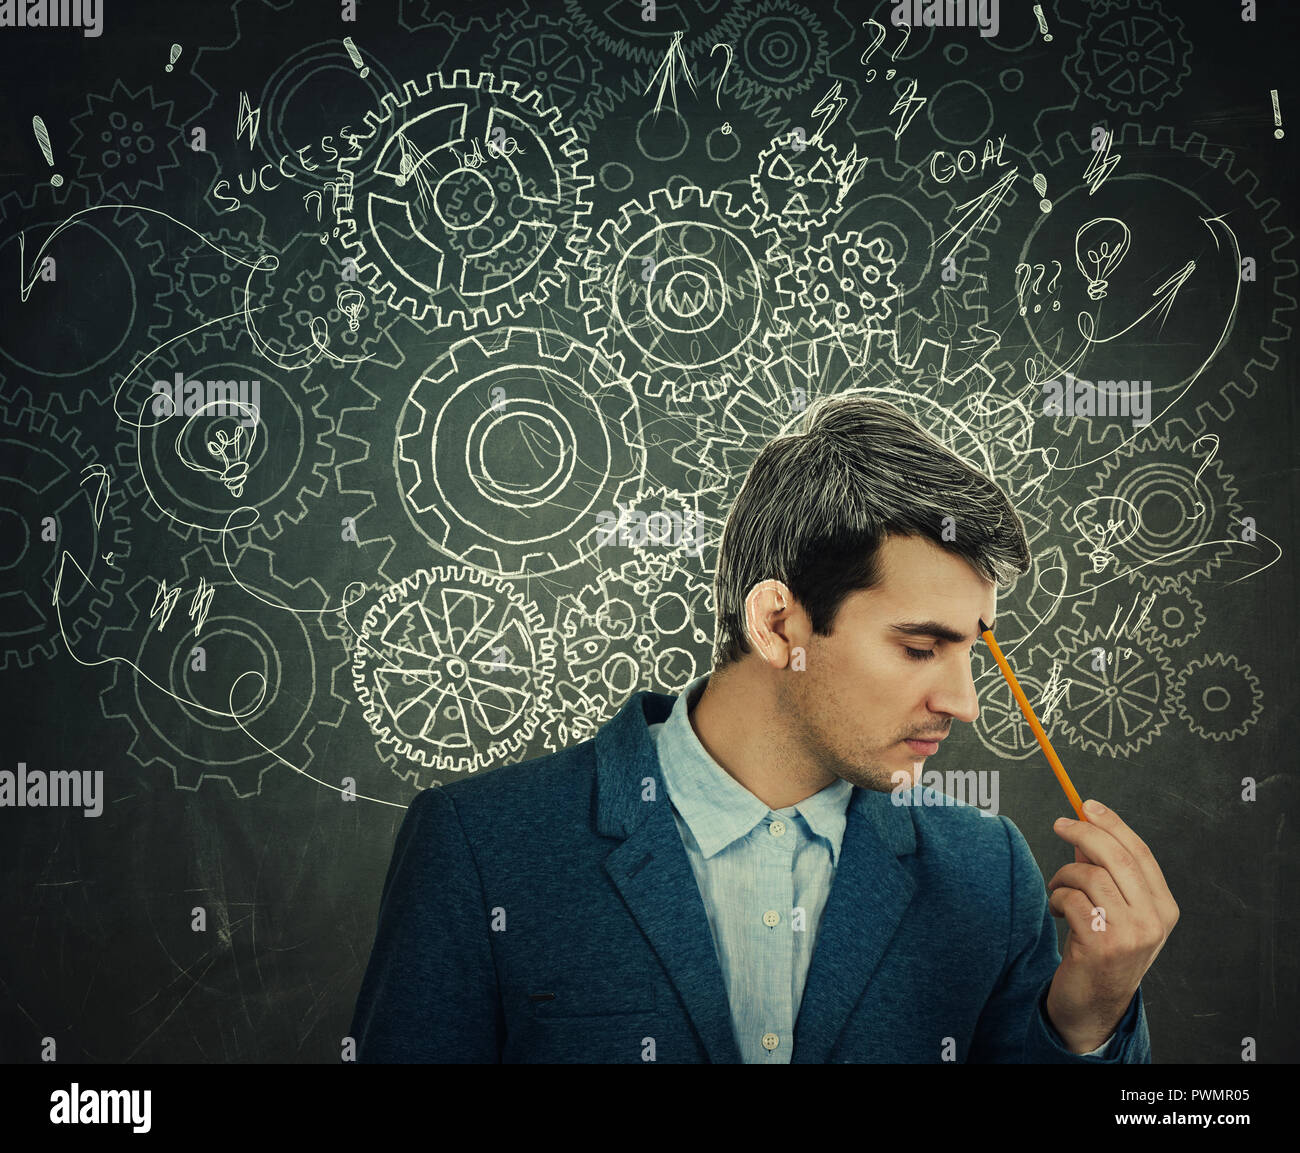 Hard thinking serious man over blackboard background gear brain arrows and mess as thoughts. Concept for mental, psychological development. - Stock Image